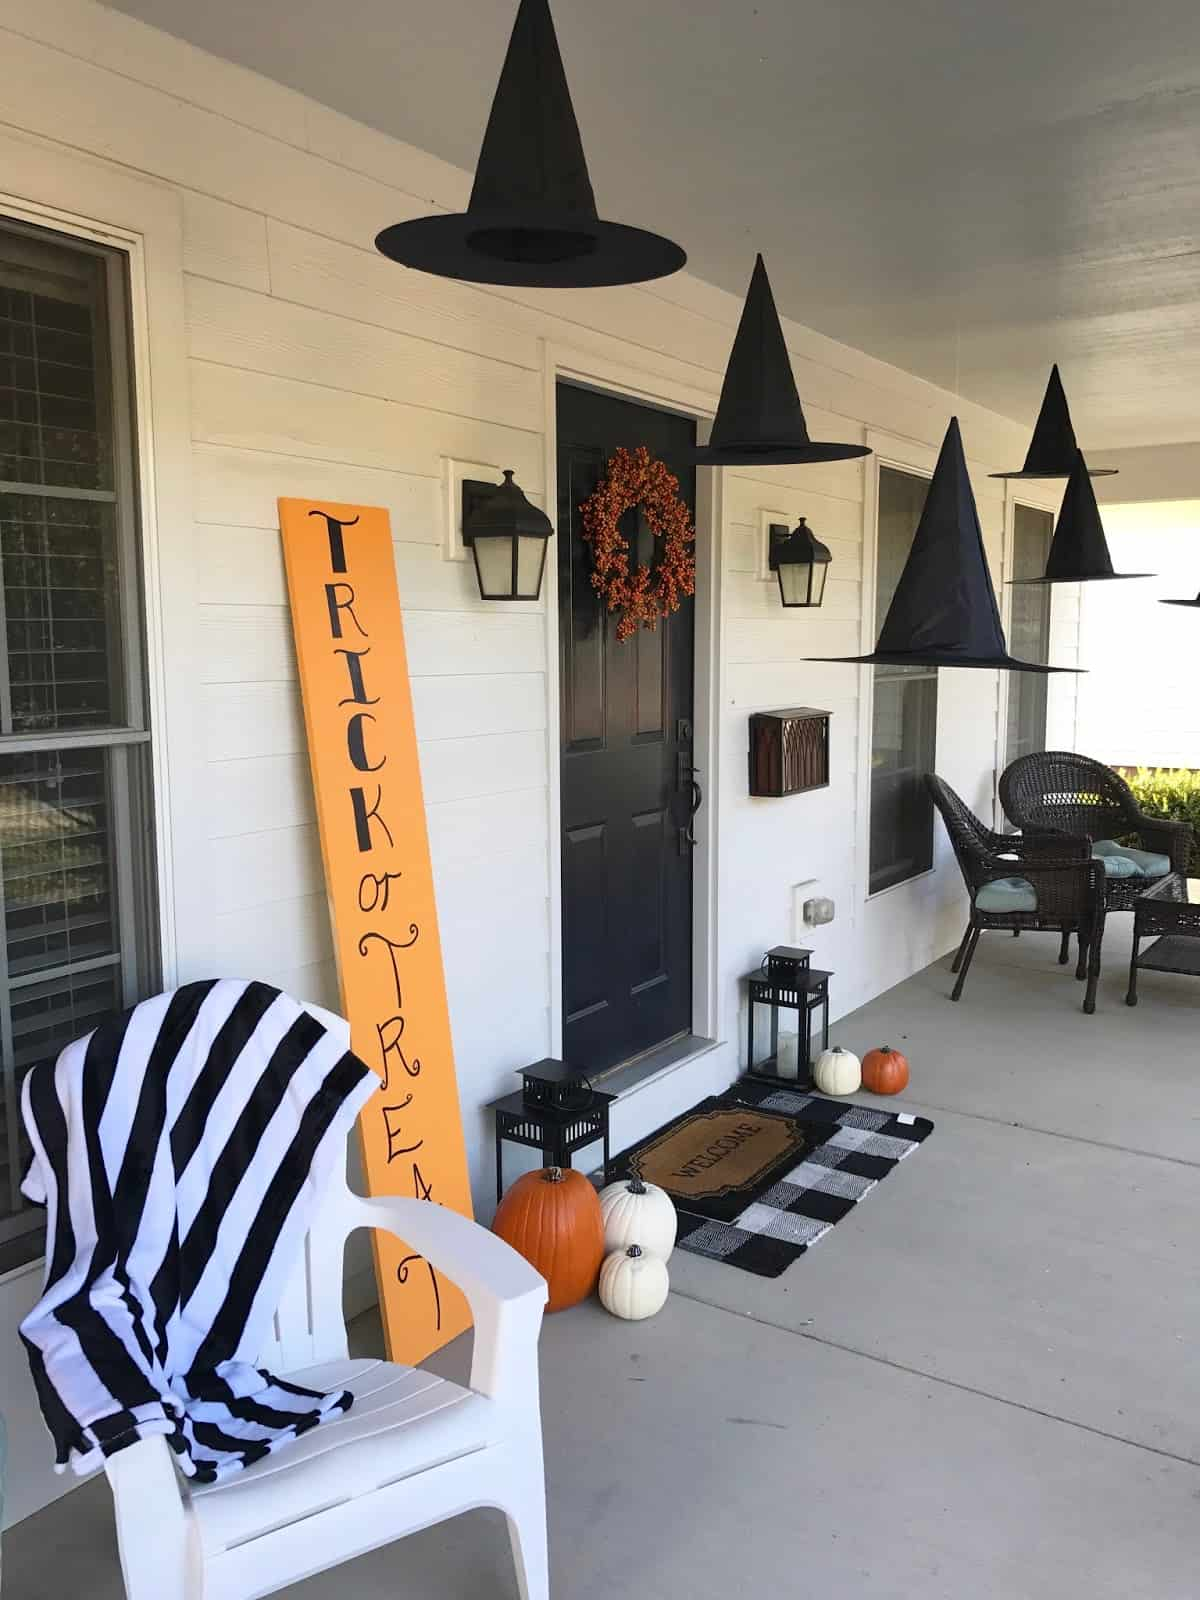 haloween hats Halloween front porch décor that will make your neighbors jealous